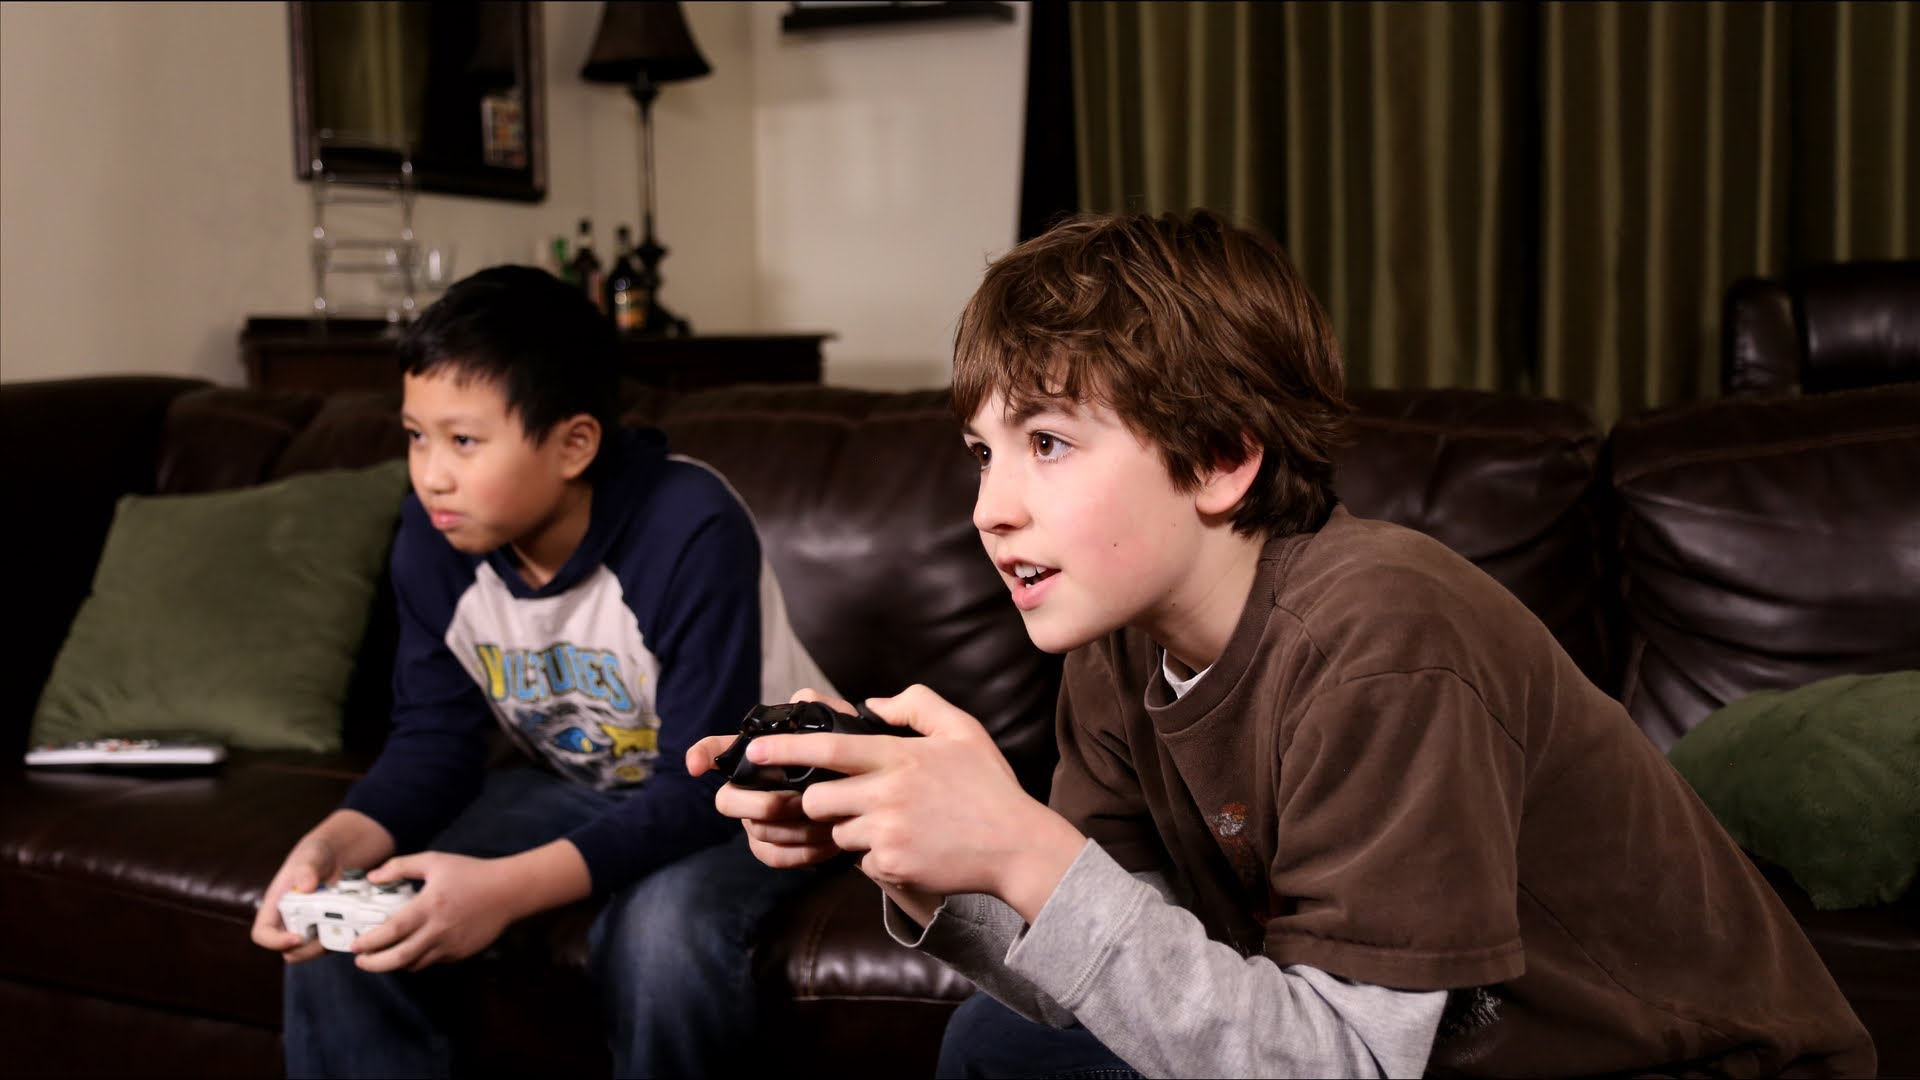 Young Boy Can't Remember the Name of His Friend Whose House He Visits To Play Xbox